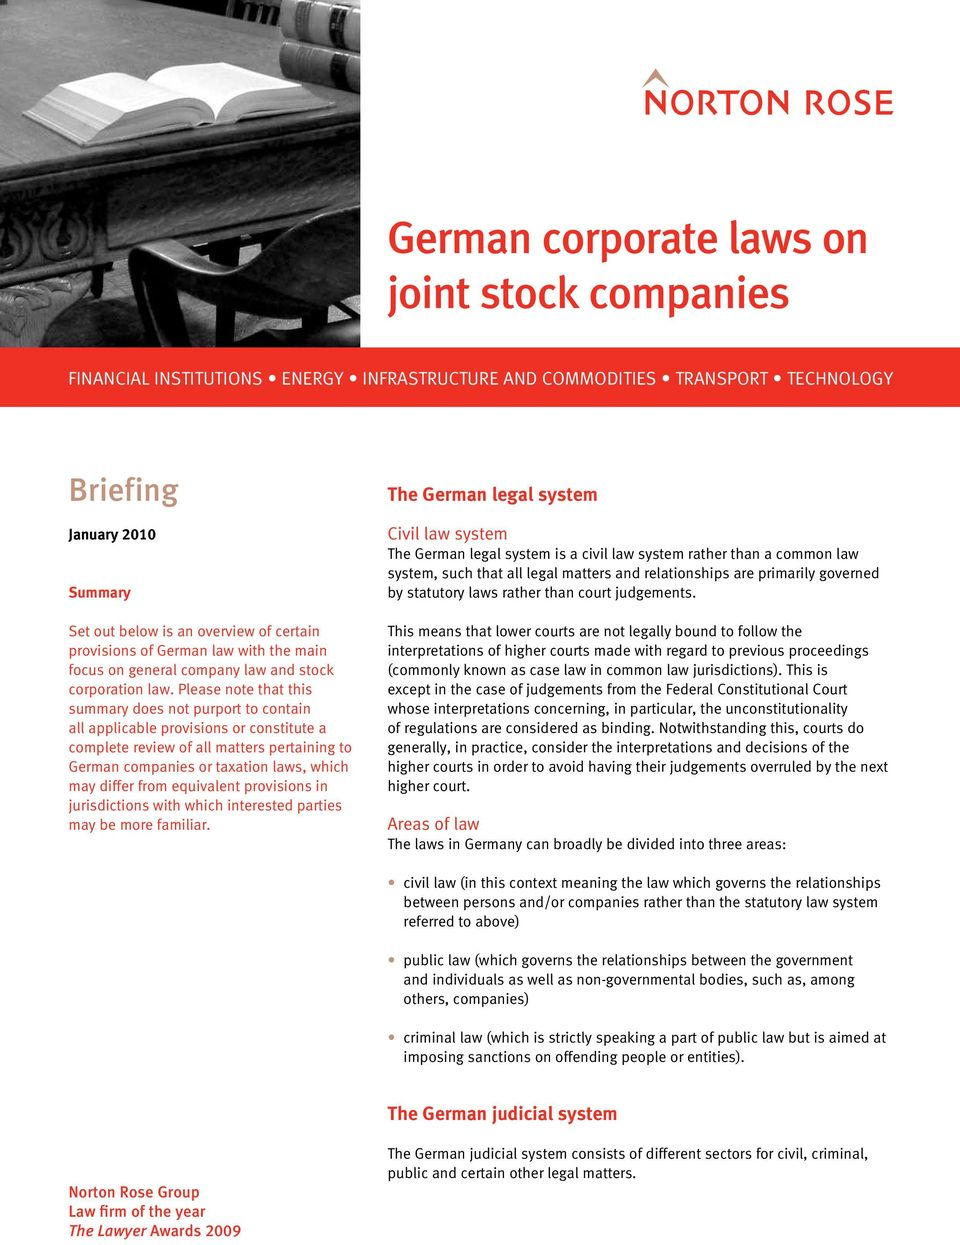 Please note that this summary does not purport to contain all applicable provisions or constitute a complete review of all matters pertaining to German companies or taxation laws, which may differ